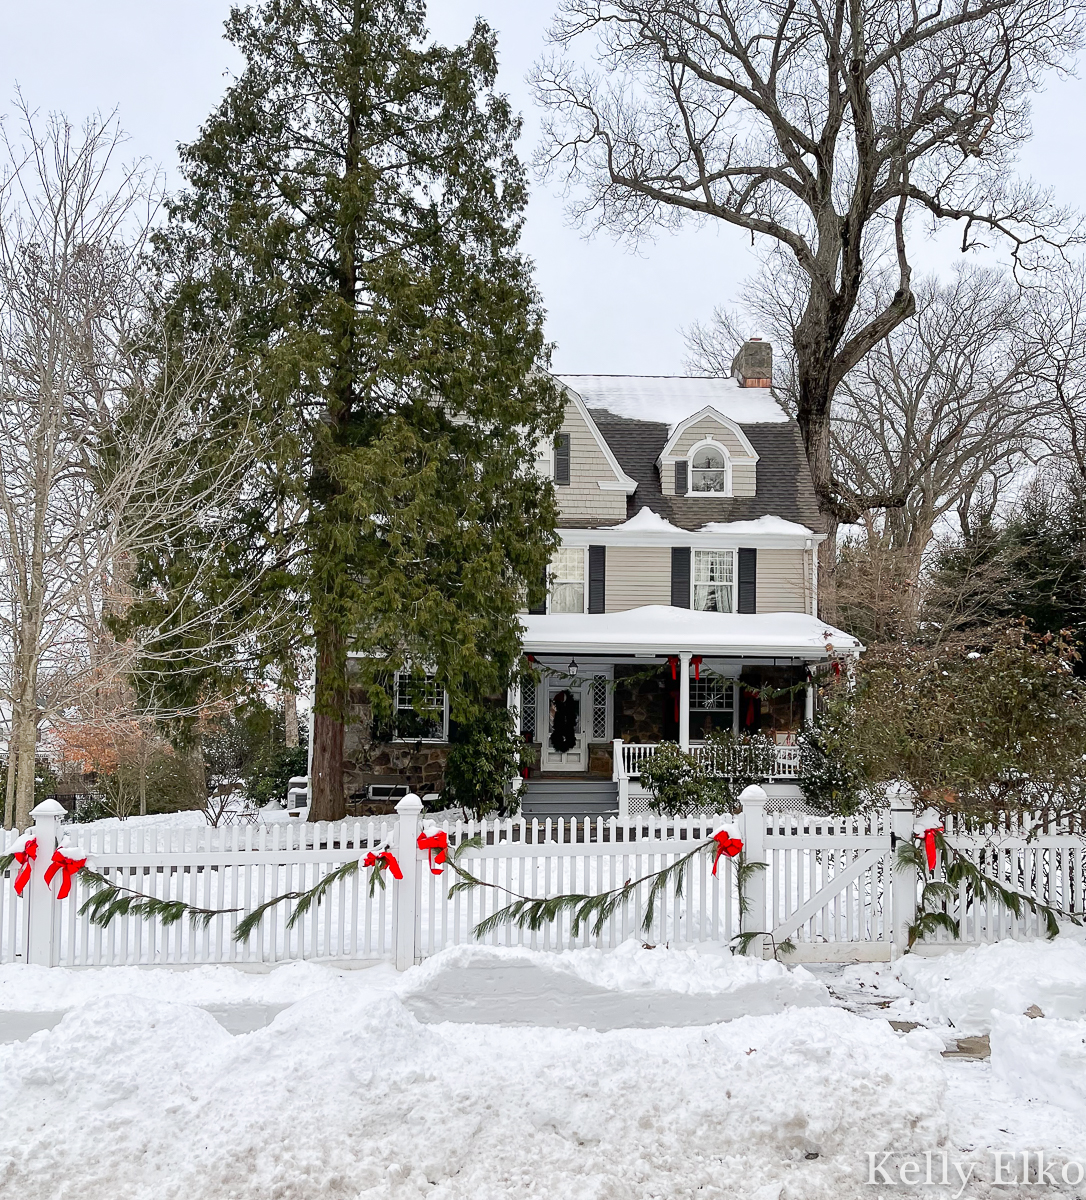 Love this beautiful snow covered old house and picket fence with garland kellyelko.com